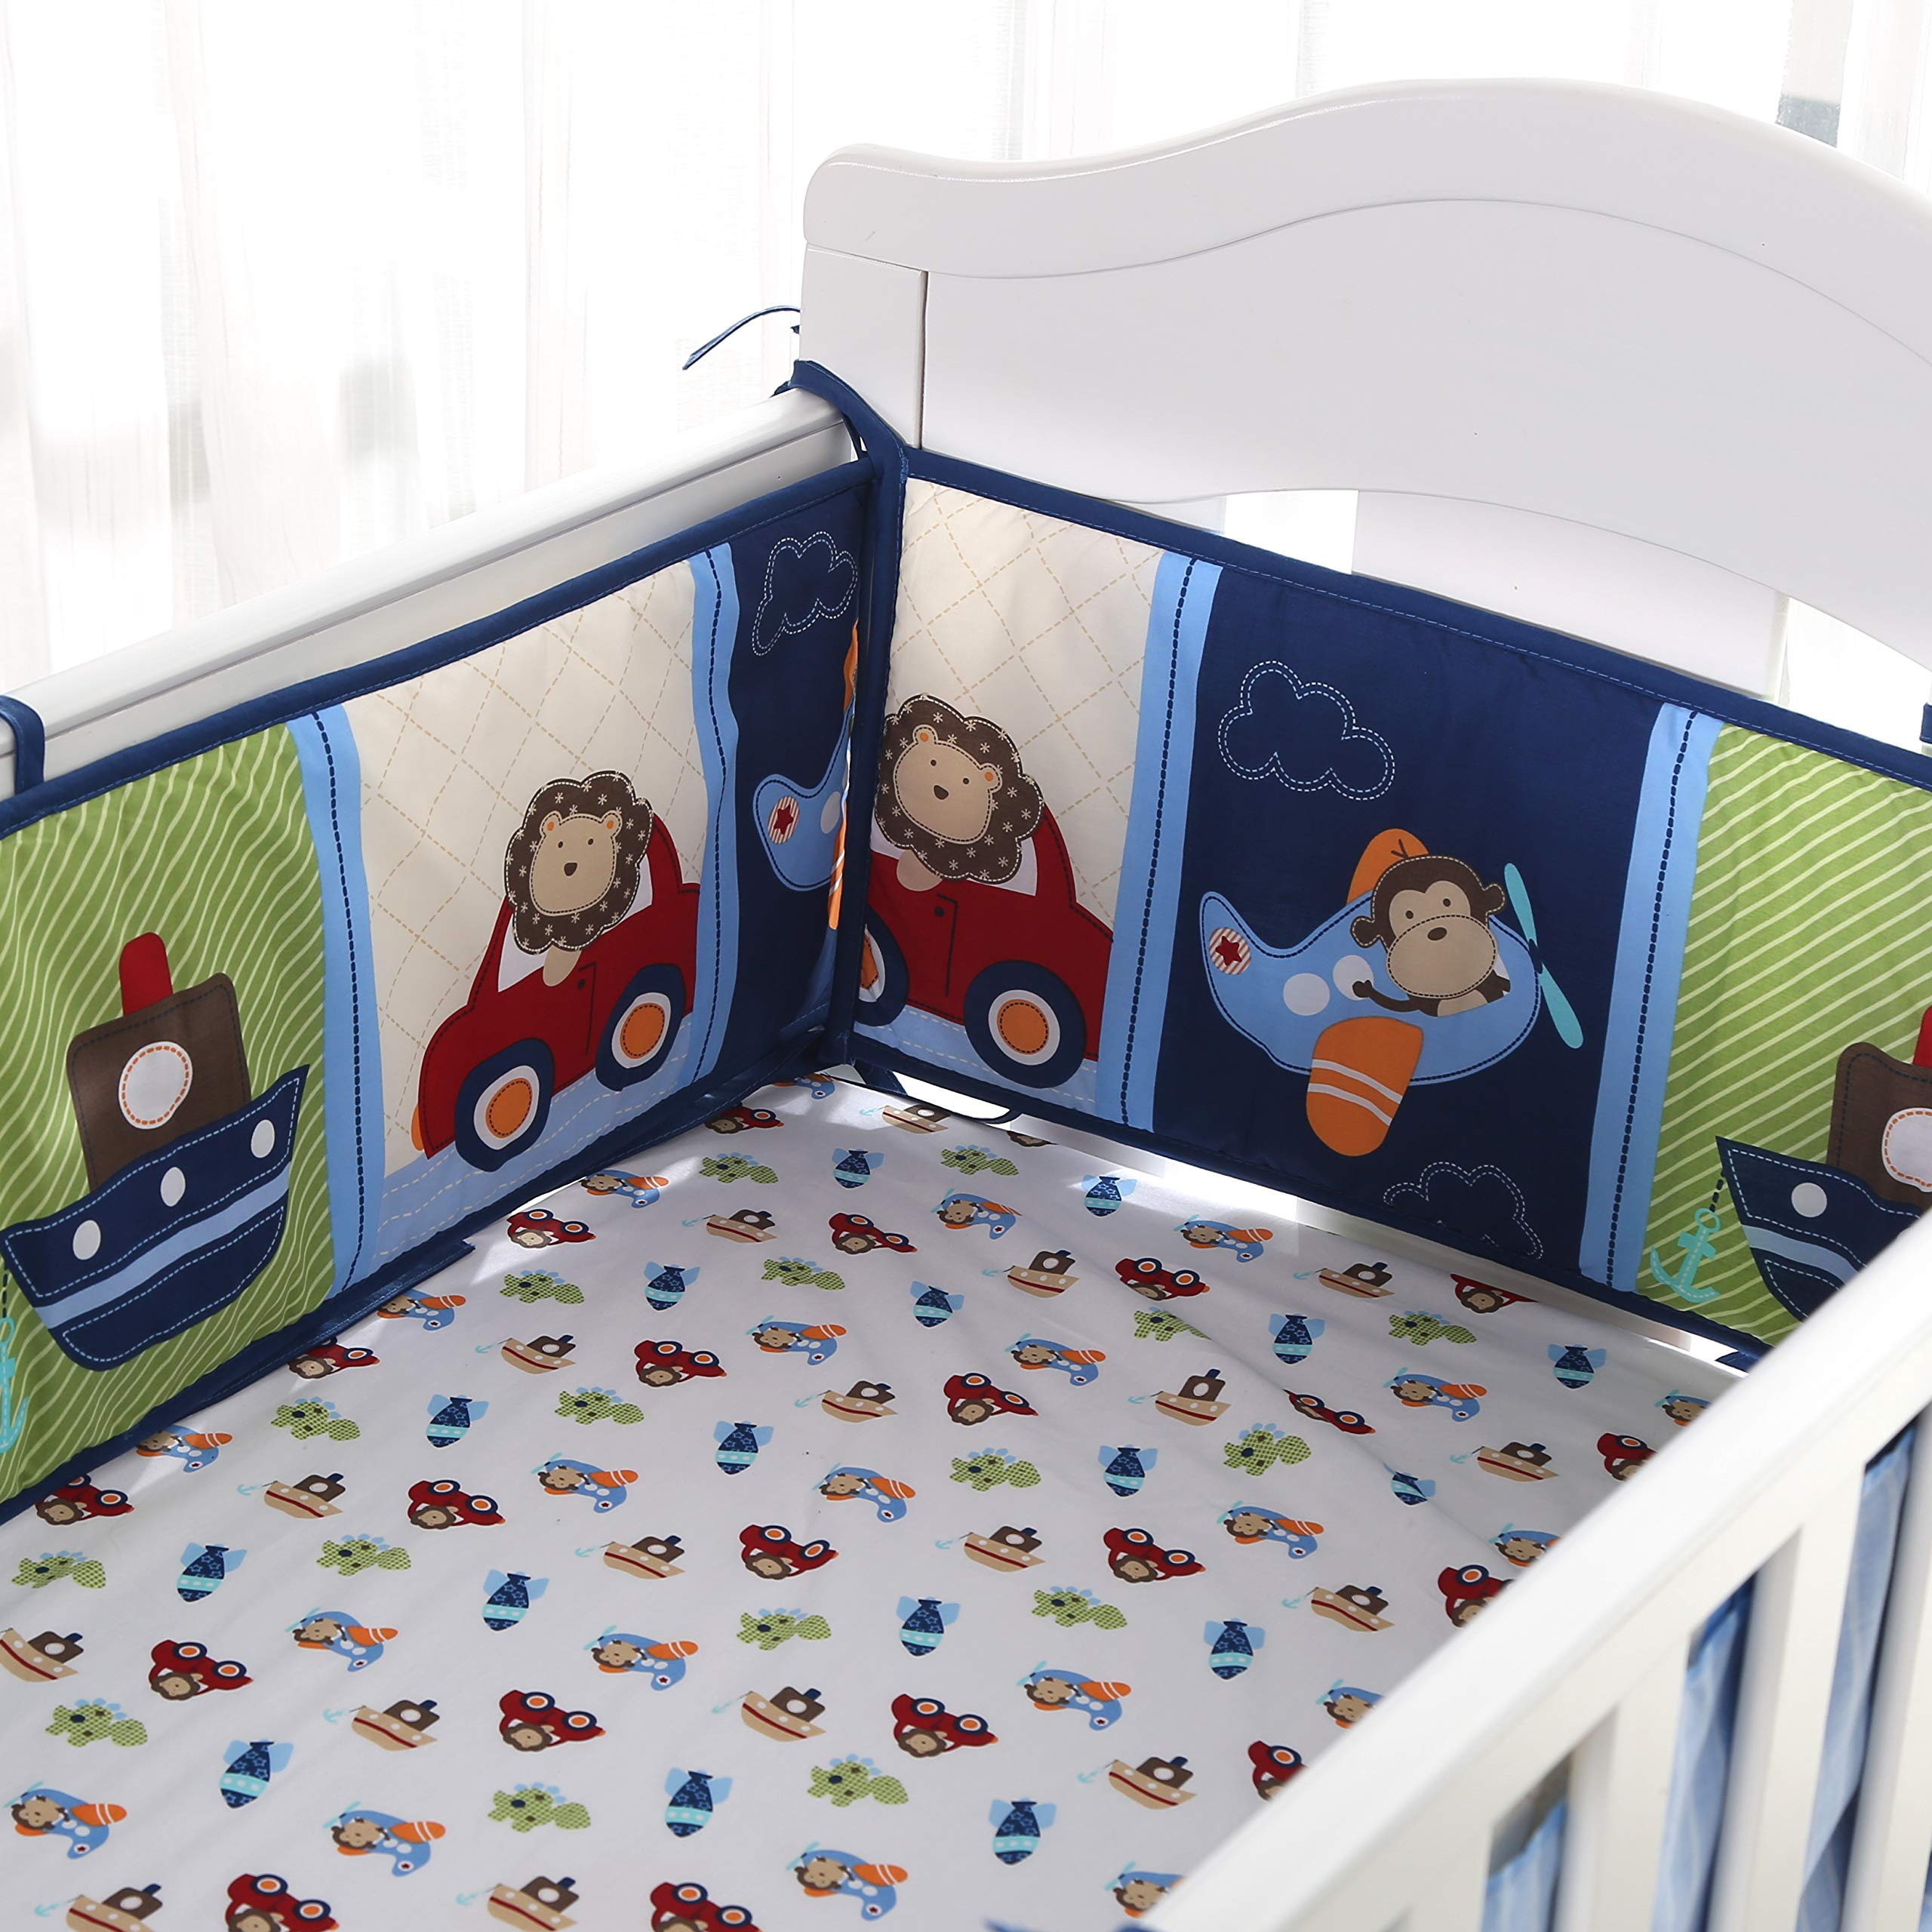 Wowelife Blue Crib Bedding Sets for Boys 7 Piece Travel Car and Airplane for Baby(Little Pilot) by Wowelife (Image #3)